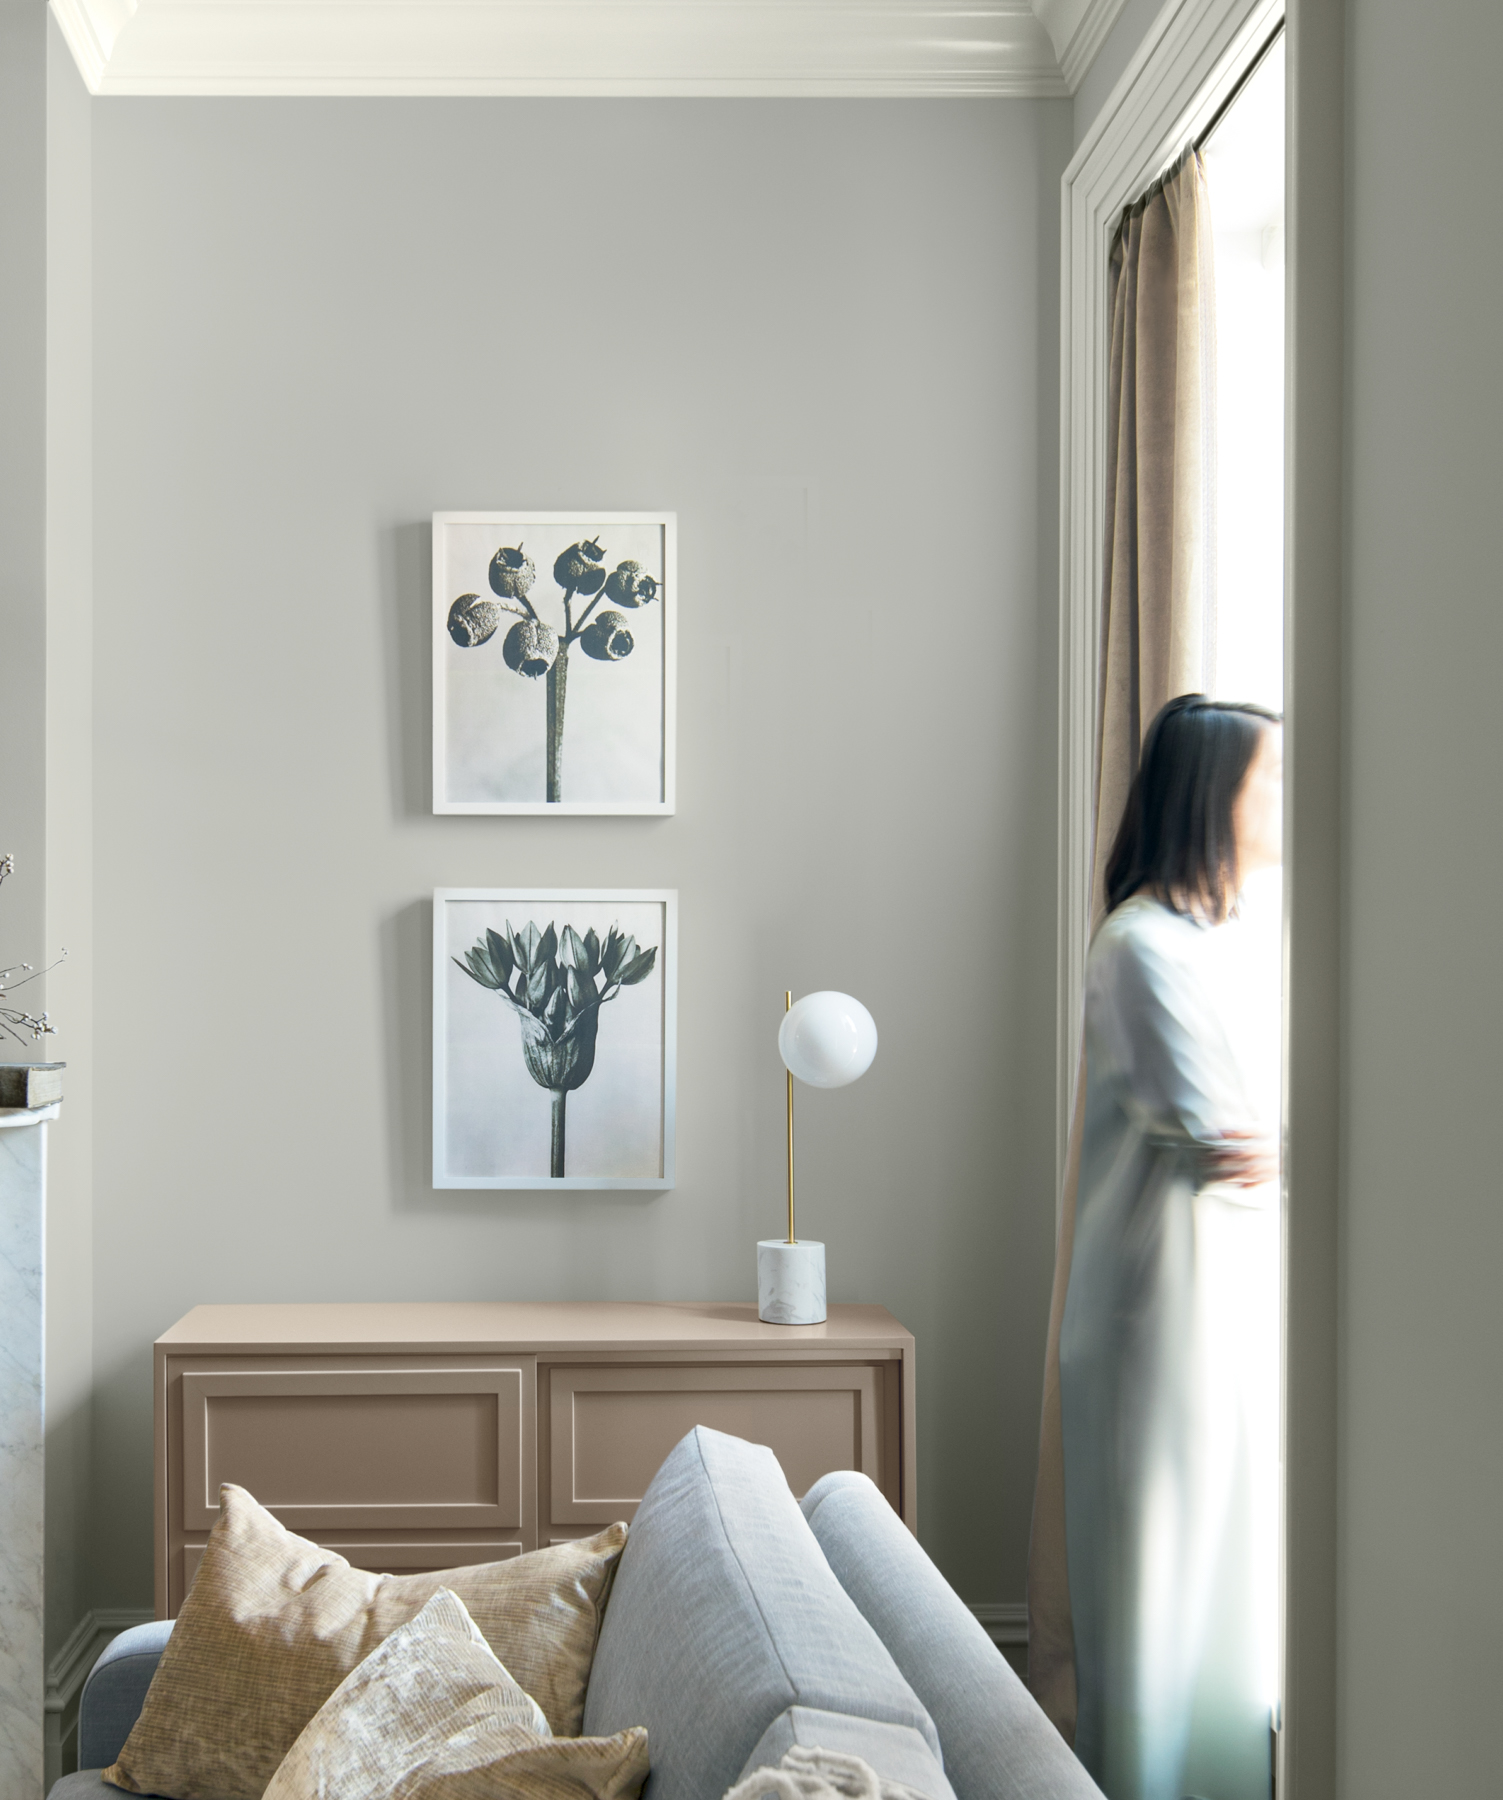 Benjamin Moore S 2019 Color Of The Year Is Metropolitan